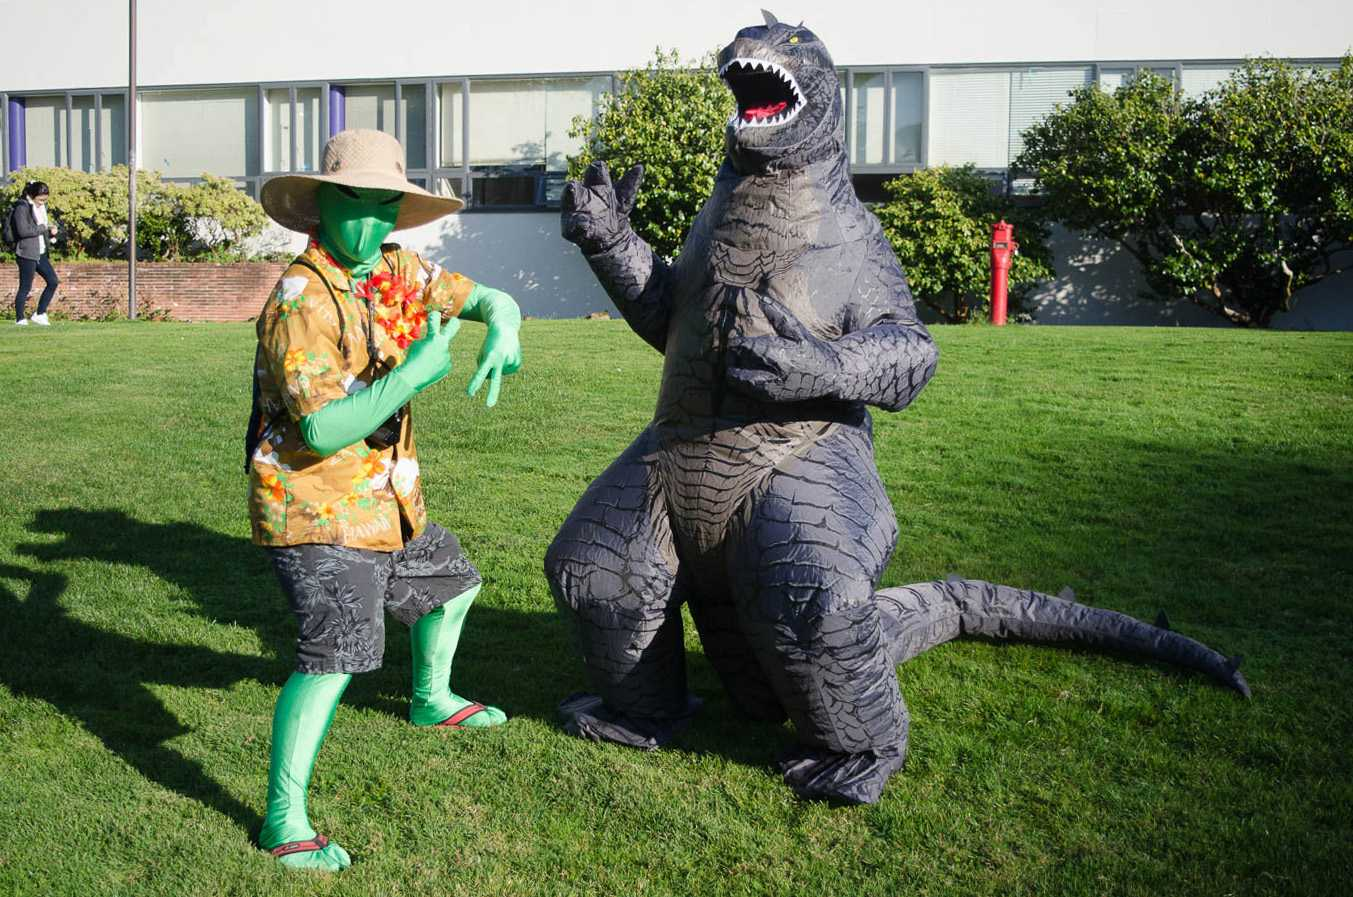 Michael Pham, 19, a biology major, is dresses as an alien tourist and Mason Hawksley, 19, a communications major, dresses as godzilla at SF State on Tuesday, October 31, 2017. (Richard Lomibao/Golden Gate Xpress)